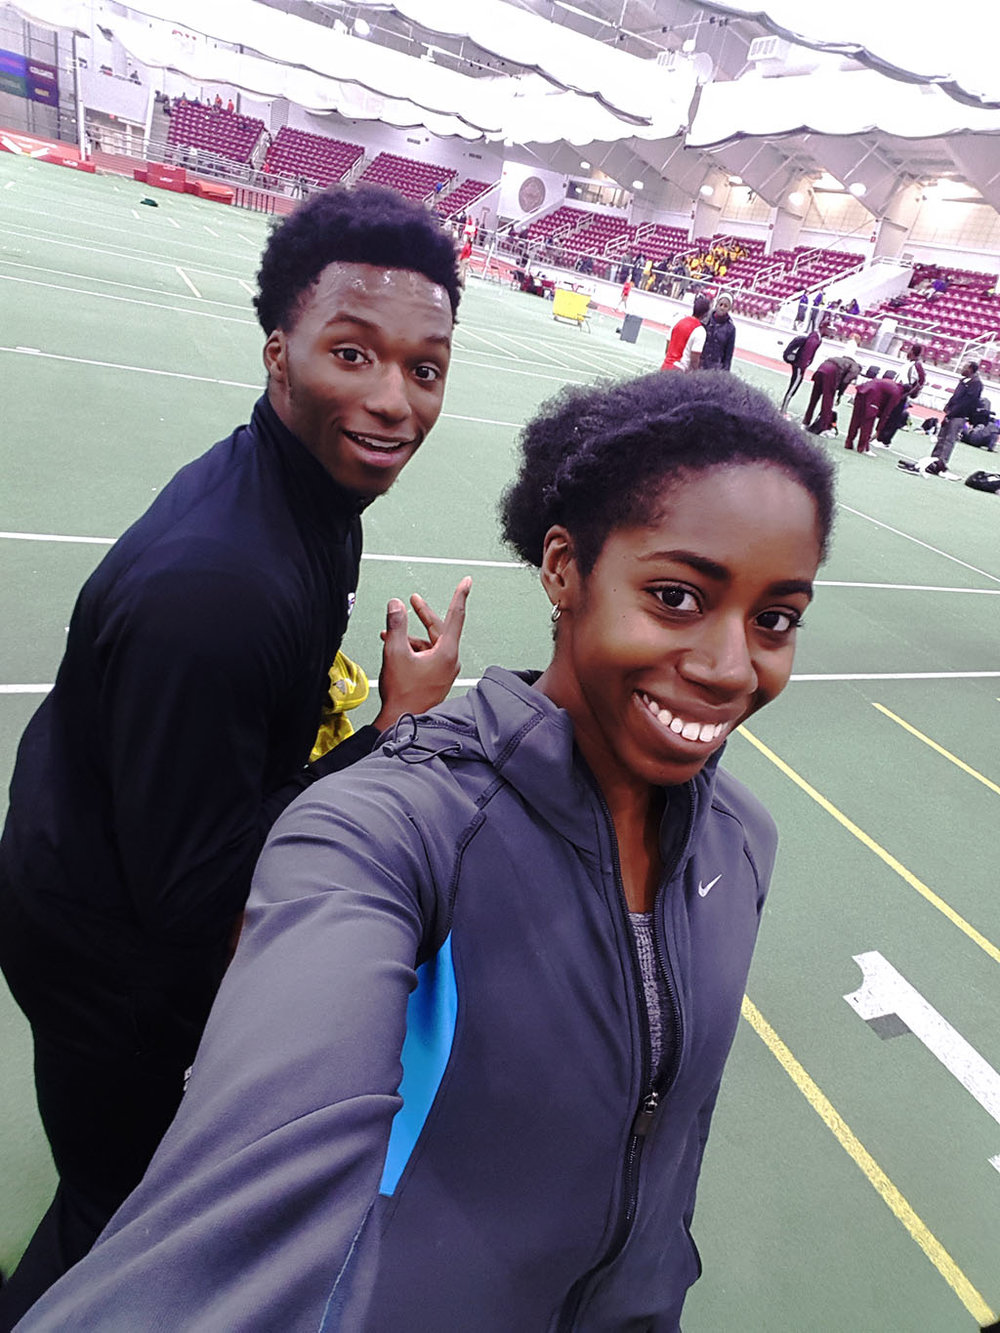 Chiebuka and I getting that post-meet selfie in